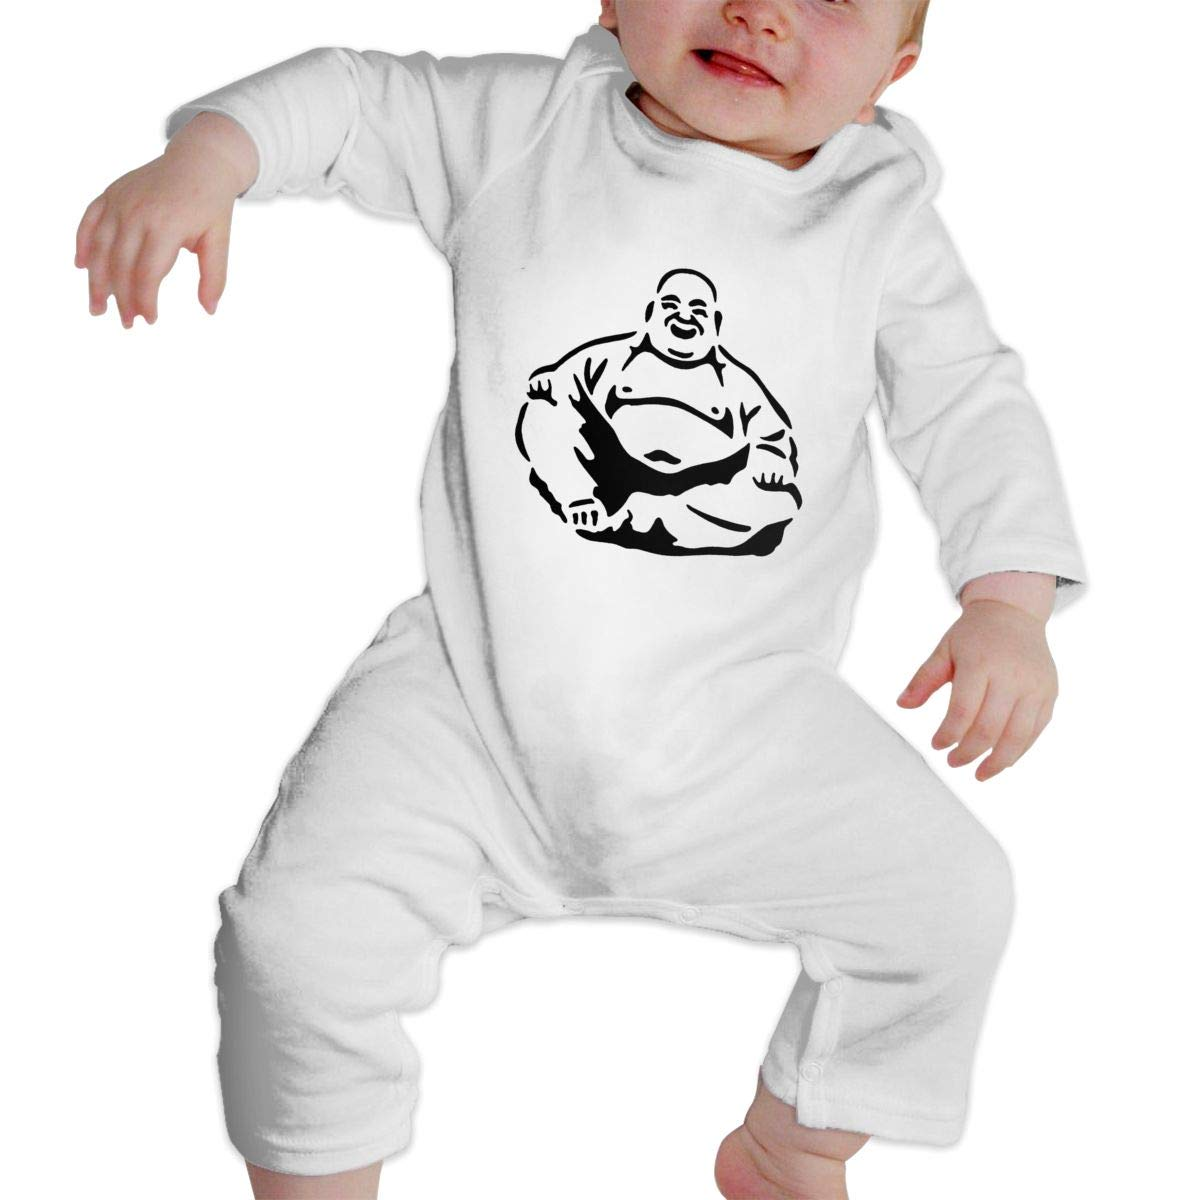 Fasenix Buddah Big Foam Newborn Baby Boy Girl Romper Jumpsuit Long Sleeve Bodysuit Overalls Outfits Clothes